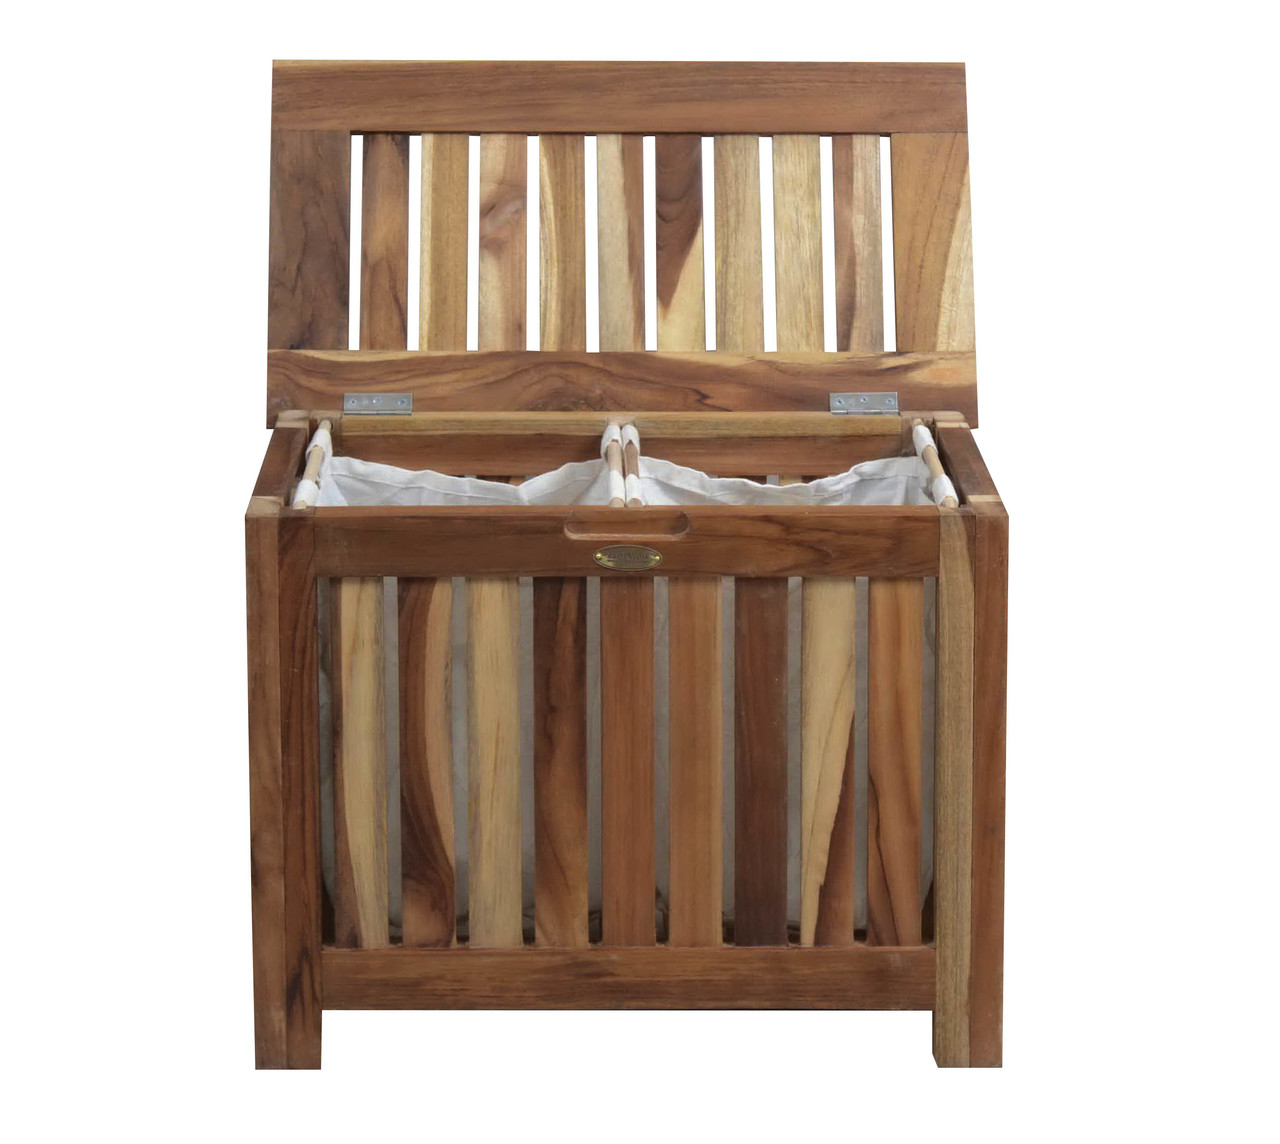 Pleasant Solid Teak Slatted Bench Hamper With Laundry Bag Creativecarmelina Interior Chair Design Creativecarmelinacom